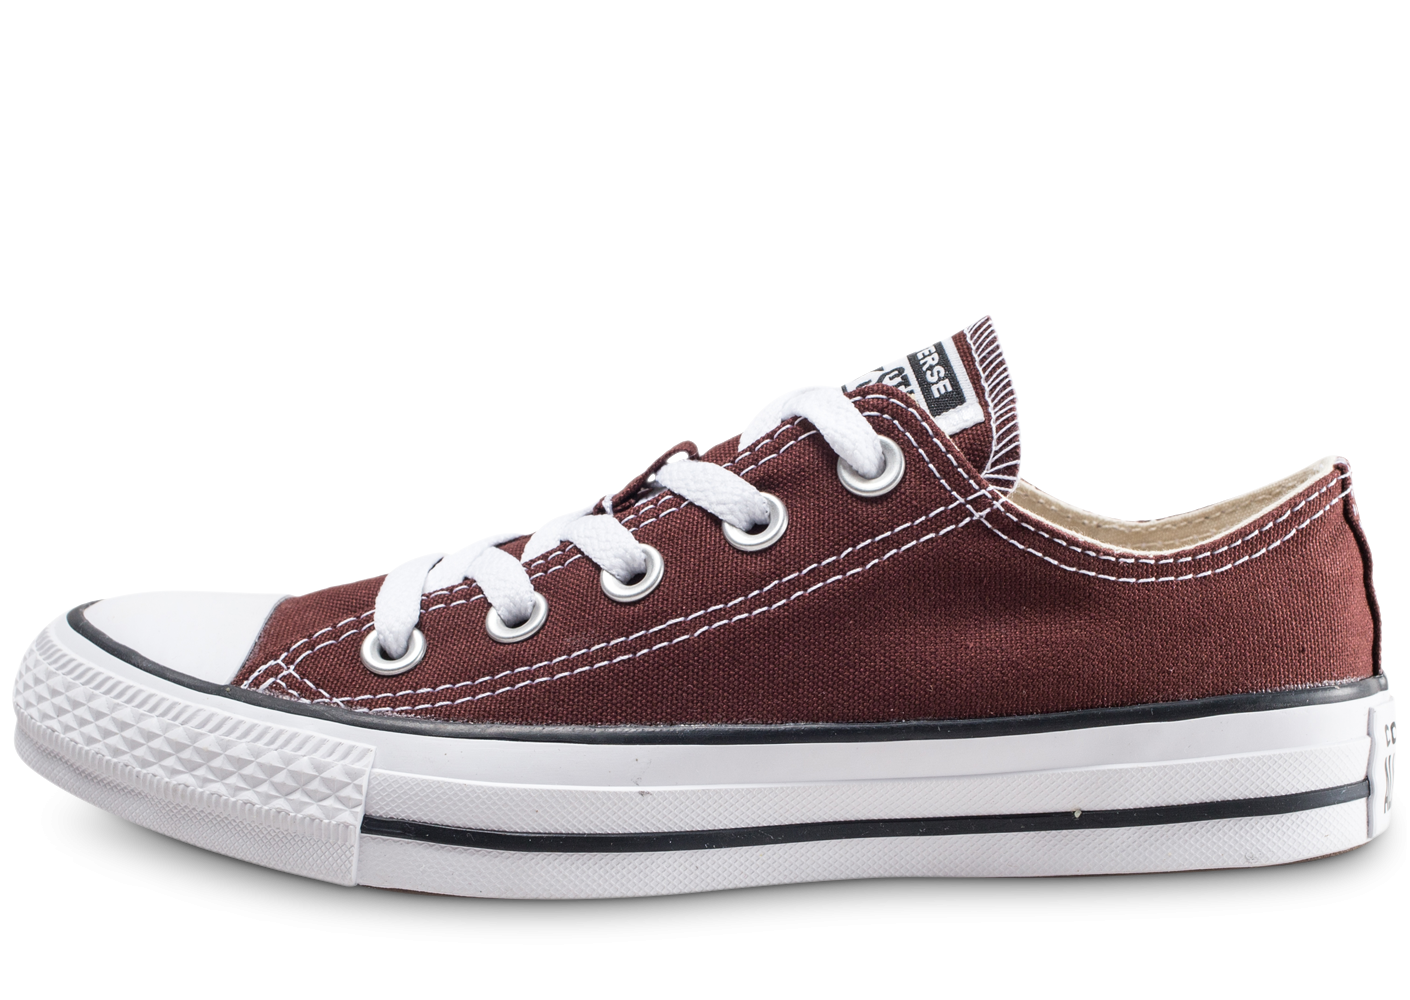 Converse Chuck Taylor All Star Low marron femme